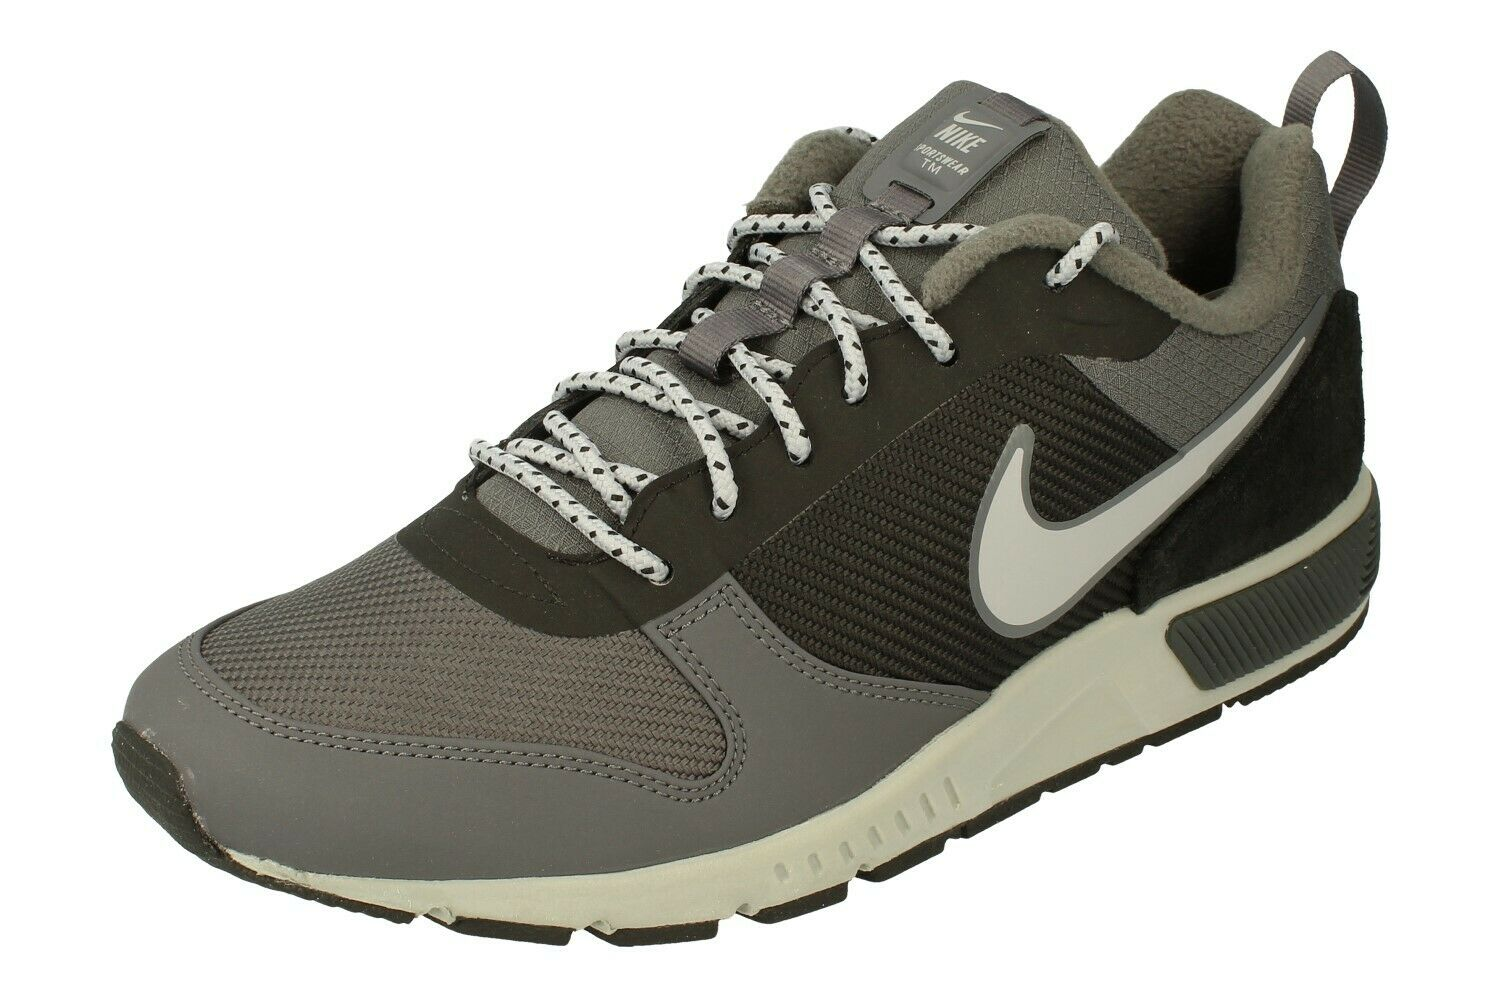 Nike Nightgazer Trail Mens Running Trainers 916775 Sneakers shoes 006